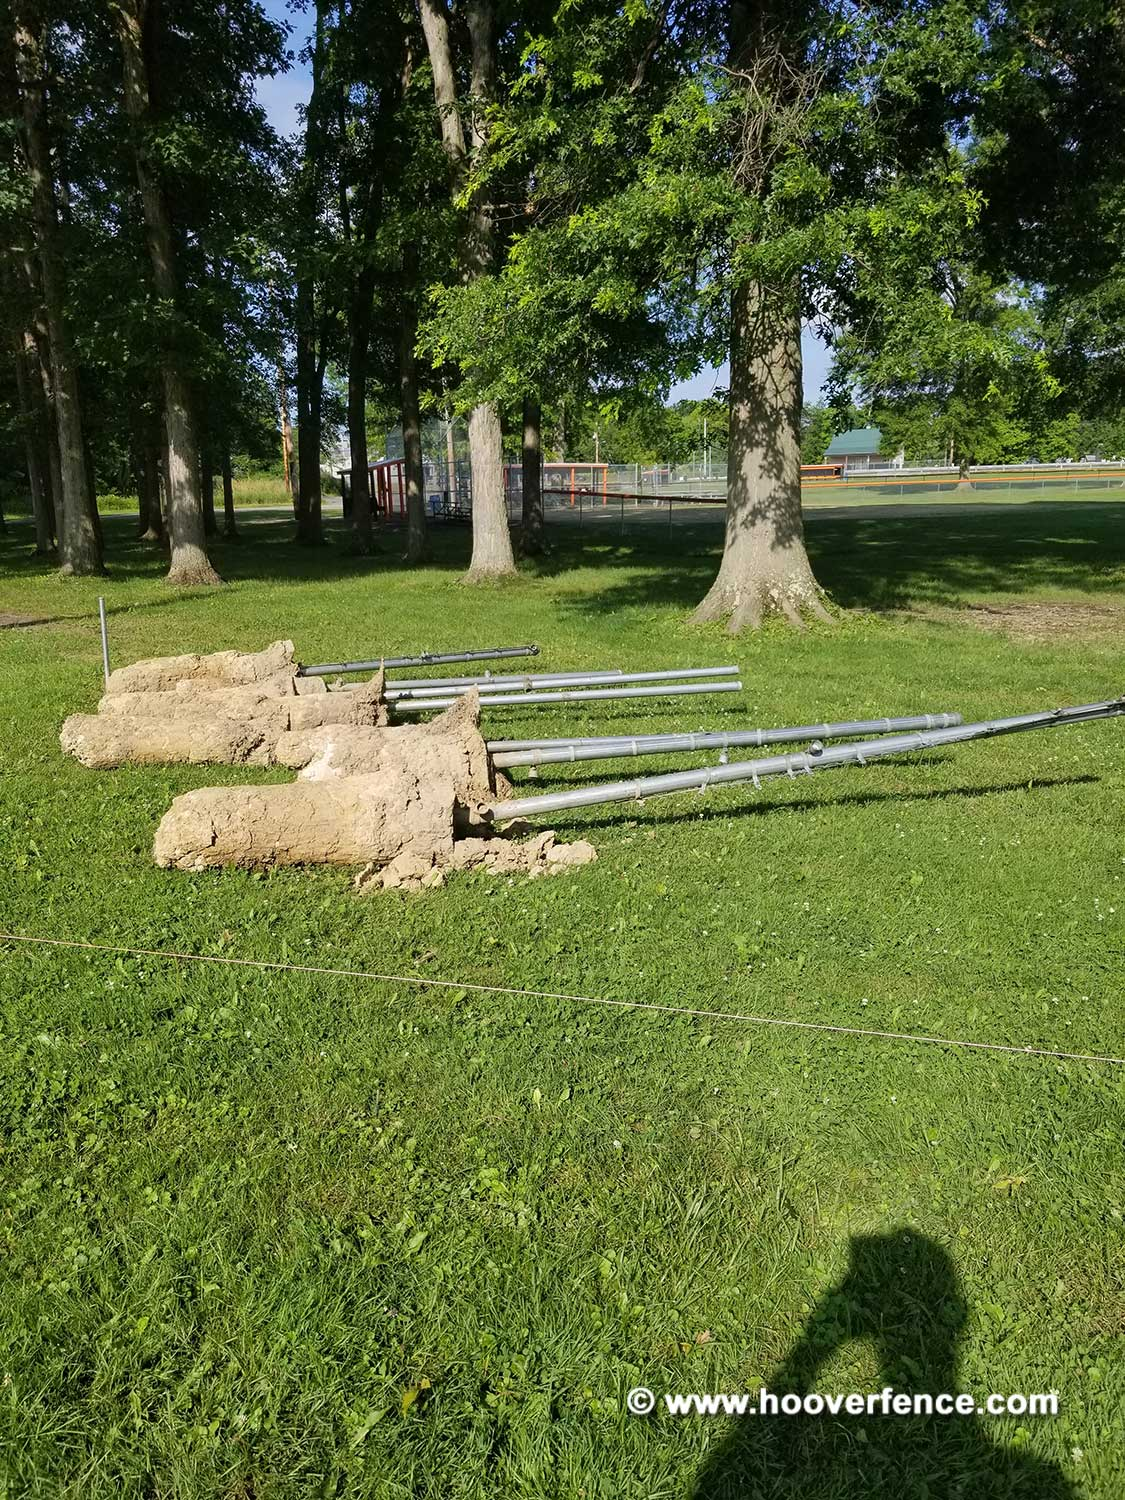 Hoover Fence Co Installation BS-F37 Baseball Backstop Demolition - Newton Falls, OH